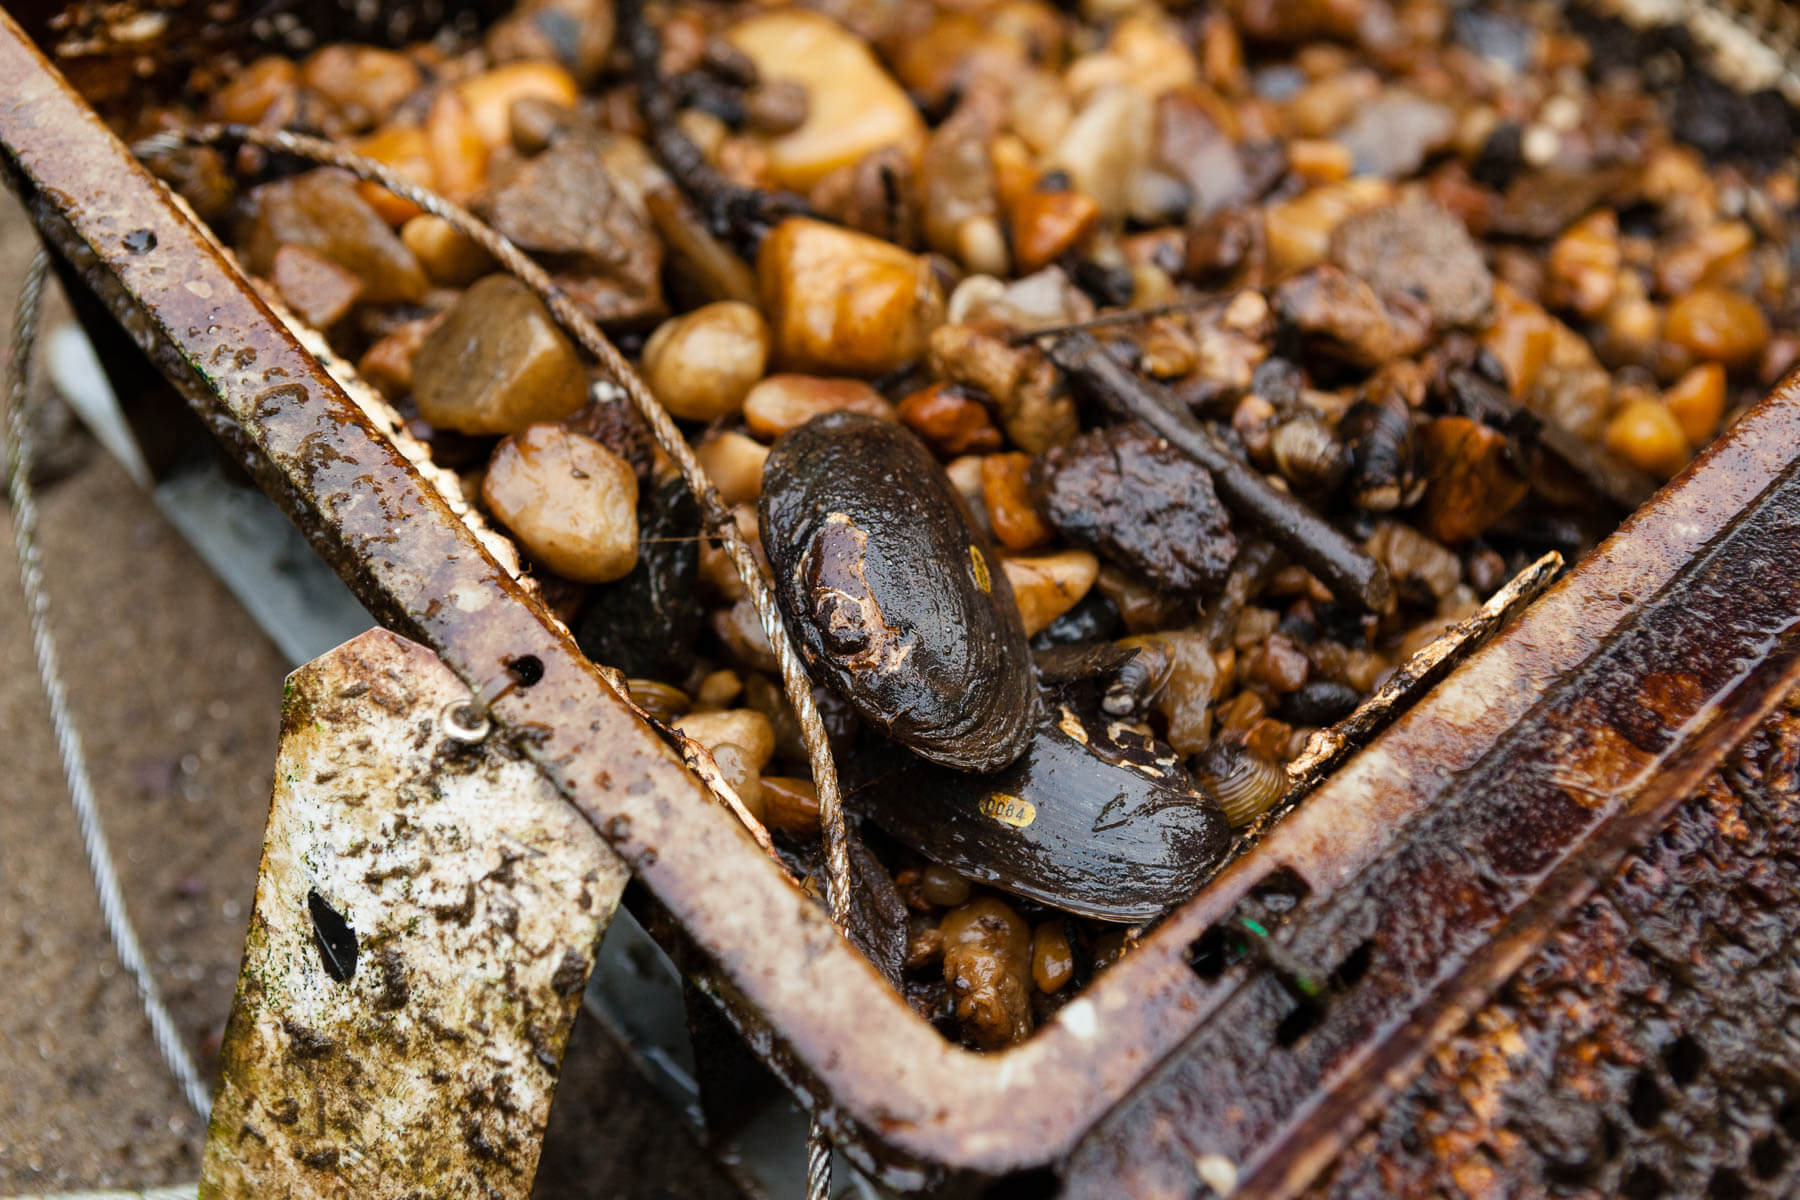 Two mussels rest on the corner of a metal cage, wet from the creek